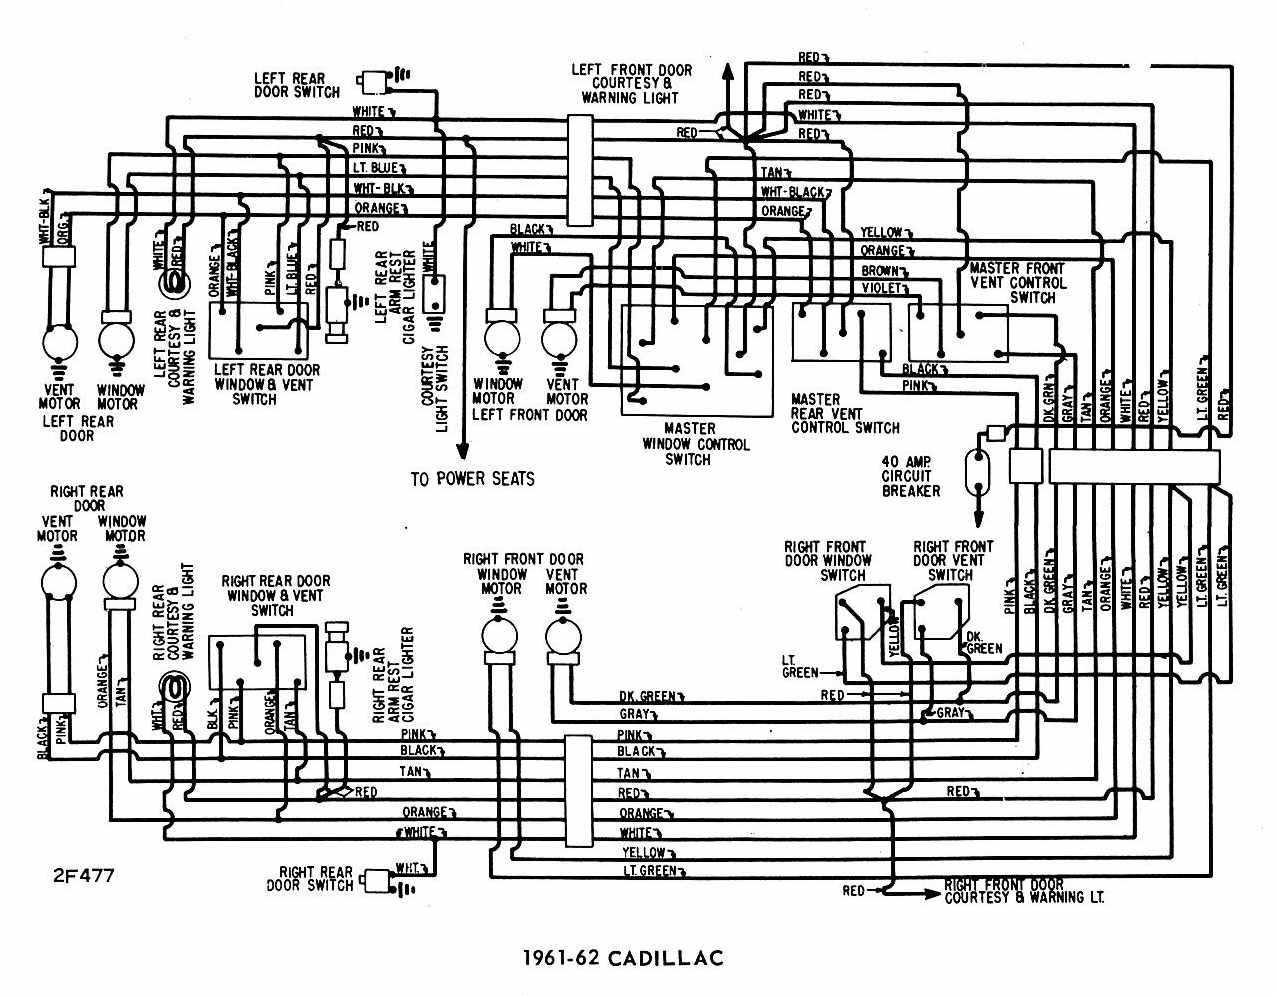 windows wiring diagram of 1961 62 cadillac?t=1508149295 cadillac car manuals, wiring diagrams pdf & fault codes cadillac srx wiring diagram at soozxer.org